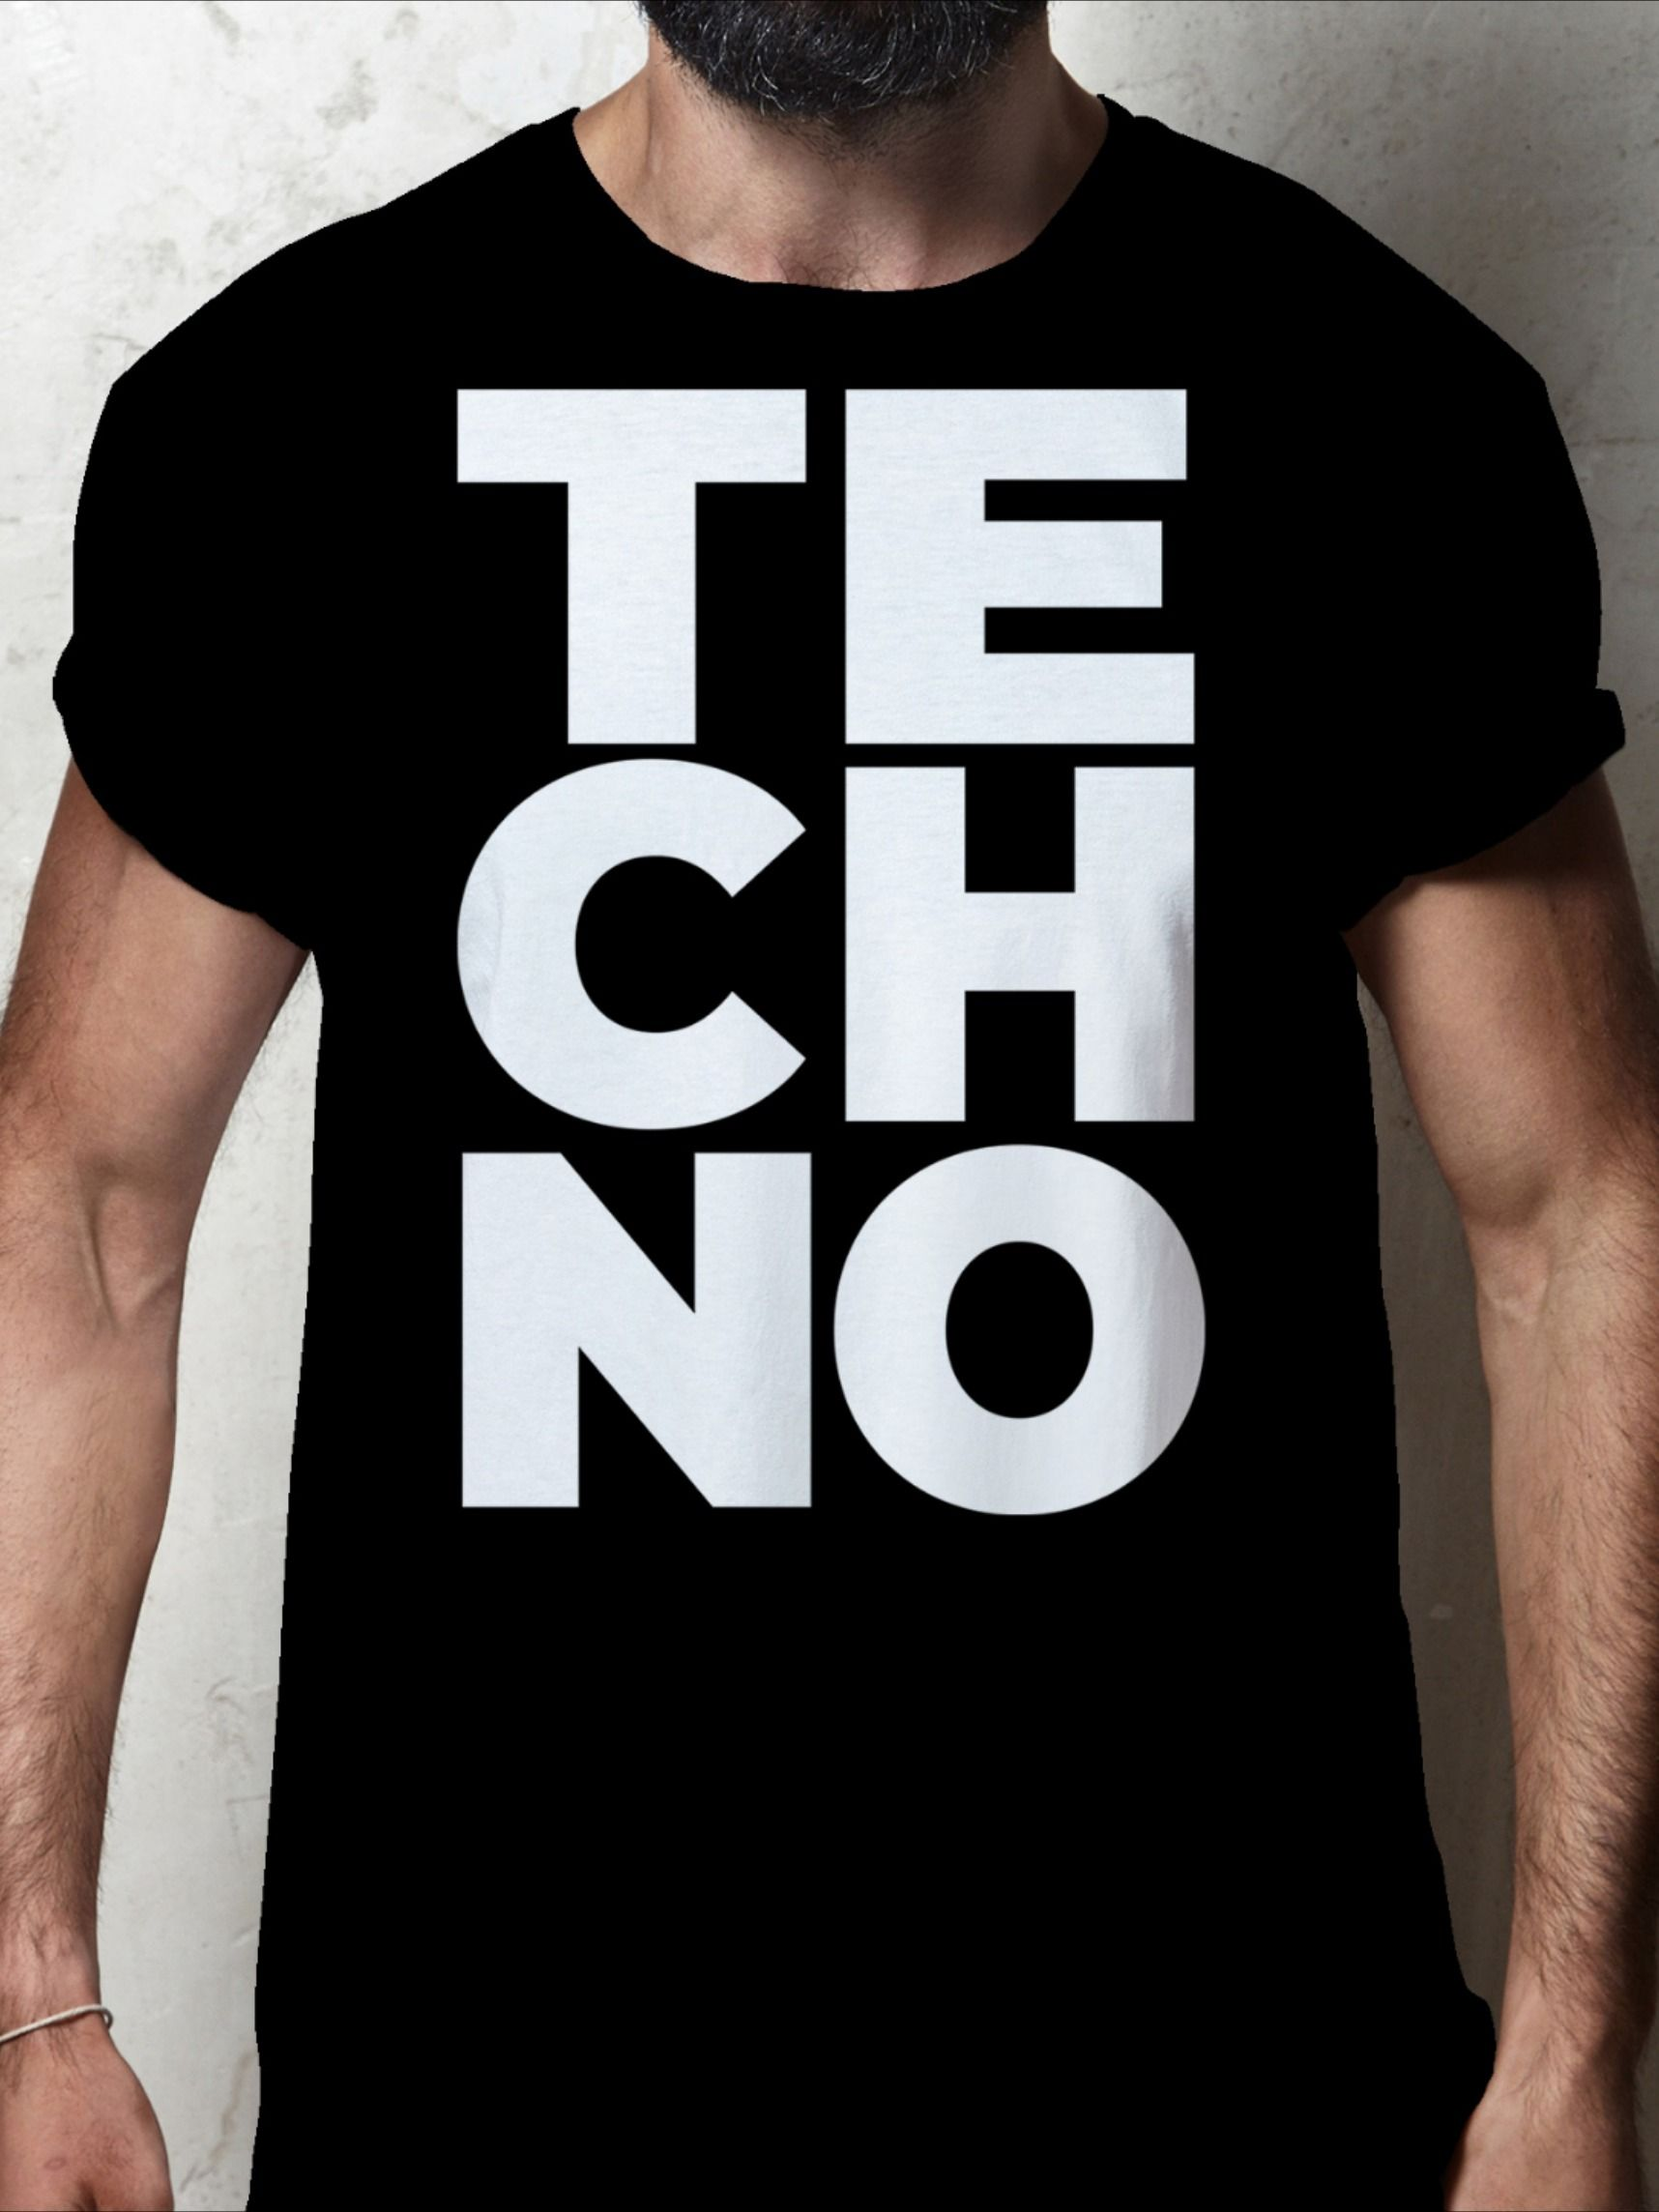 This Techno Shirt Is the perfect festival outfit. #techno #shirt #tees #zovtees #rave #EDM #technofashion #technooutfit #raveclothing #raven #technoliebe #technomusic #technolife #technolove #technokind #ravefashion #technodance #electronicmusic #lovetechno #technoparty #ilovetechno #festival #party #technoclub #rave  #tshirtdesign #tshirtideas #clothes #clothing #dj #raveparty #ravefamily